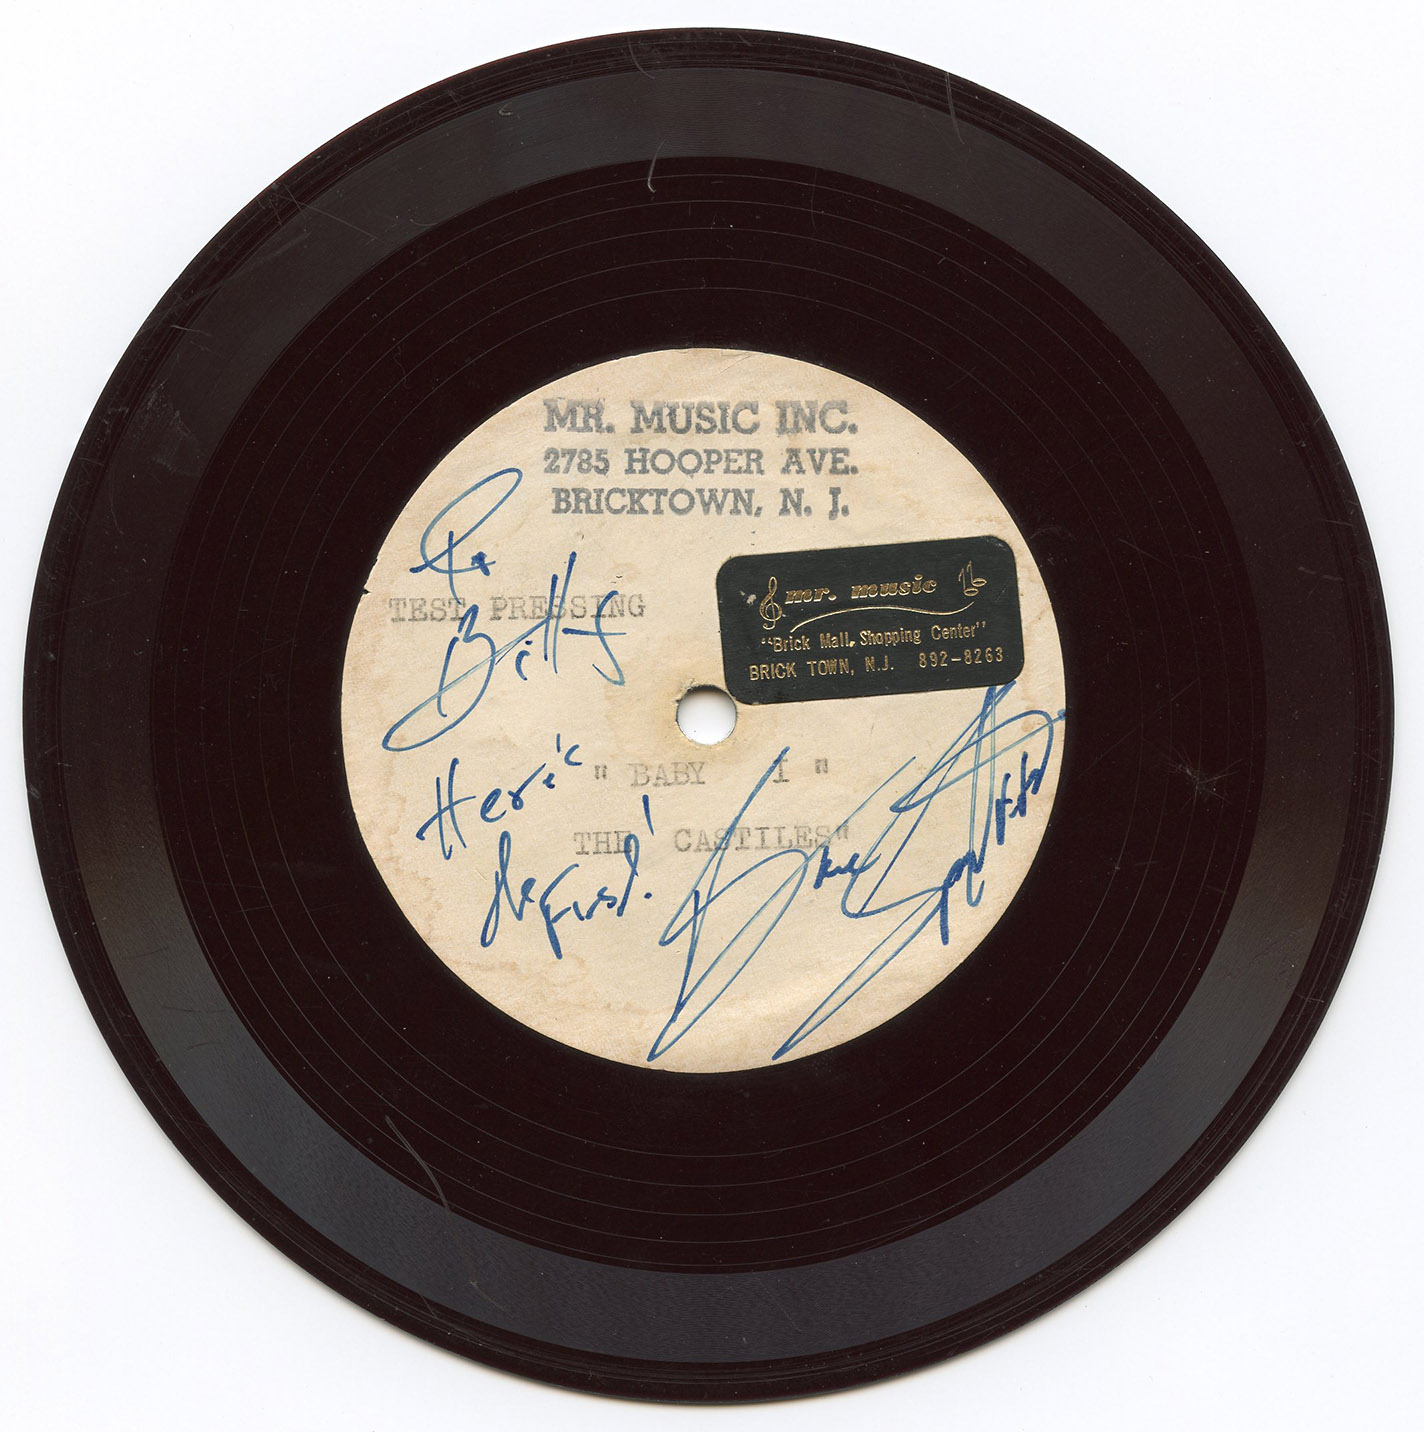 A record from Springsteen's first band, the Castiles, featuring the songs  Baby I  and  That's What You Get.  The songs were recorded in a shopping mall in Brick, N.J., on May 18, 1966.  The story goes that the songs were actually composed by Bruce and fellow band member George Theiss in the car on the way to the session,  Crane says. Only four copies are known to exist. This copy was displayed at the Rock and Roll Hall of Fame.